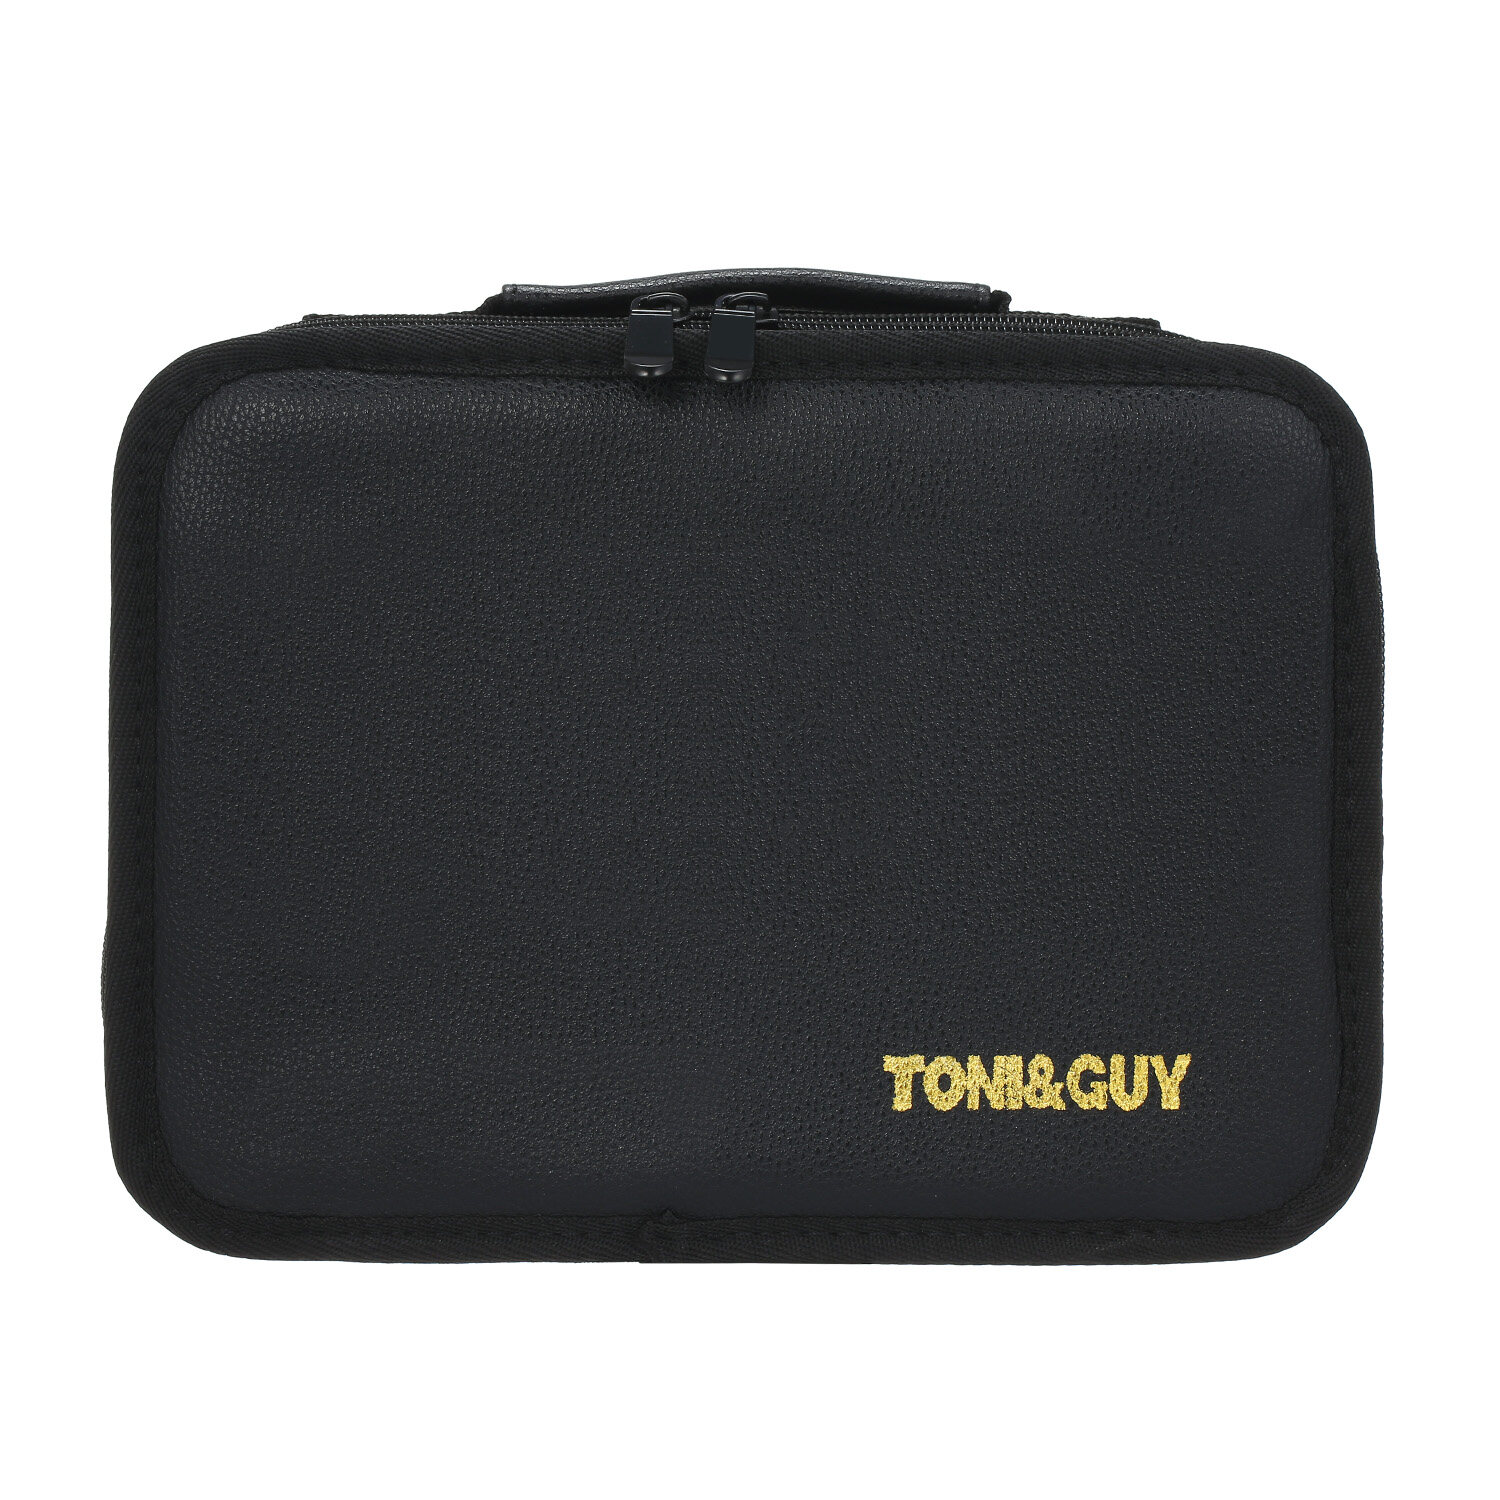 Barber Bag Waterproof Travel Storage